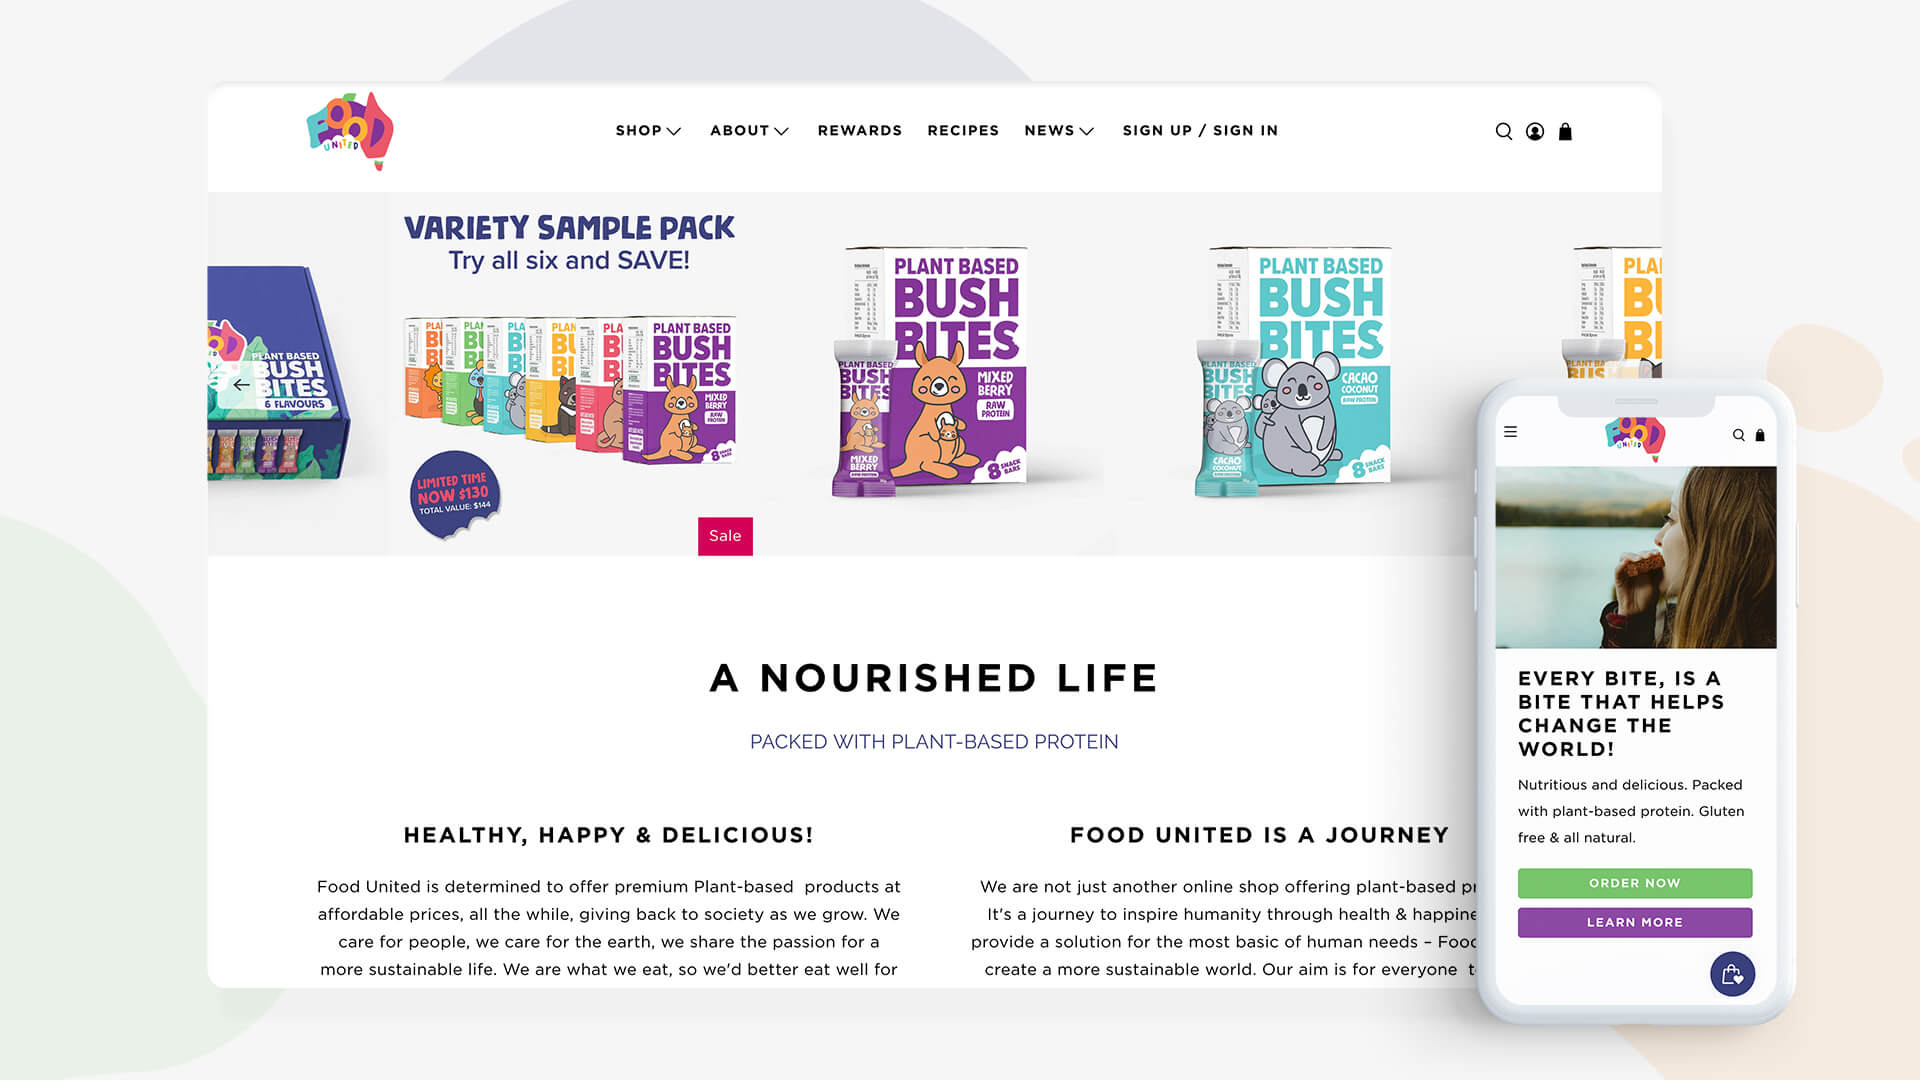 Marketing and Design Agency - Poloko - Northern Beaches - Food United